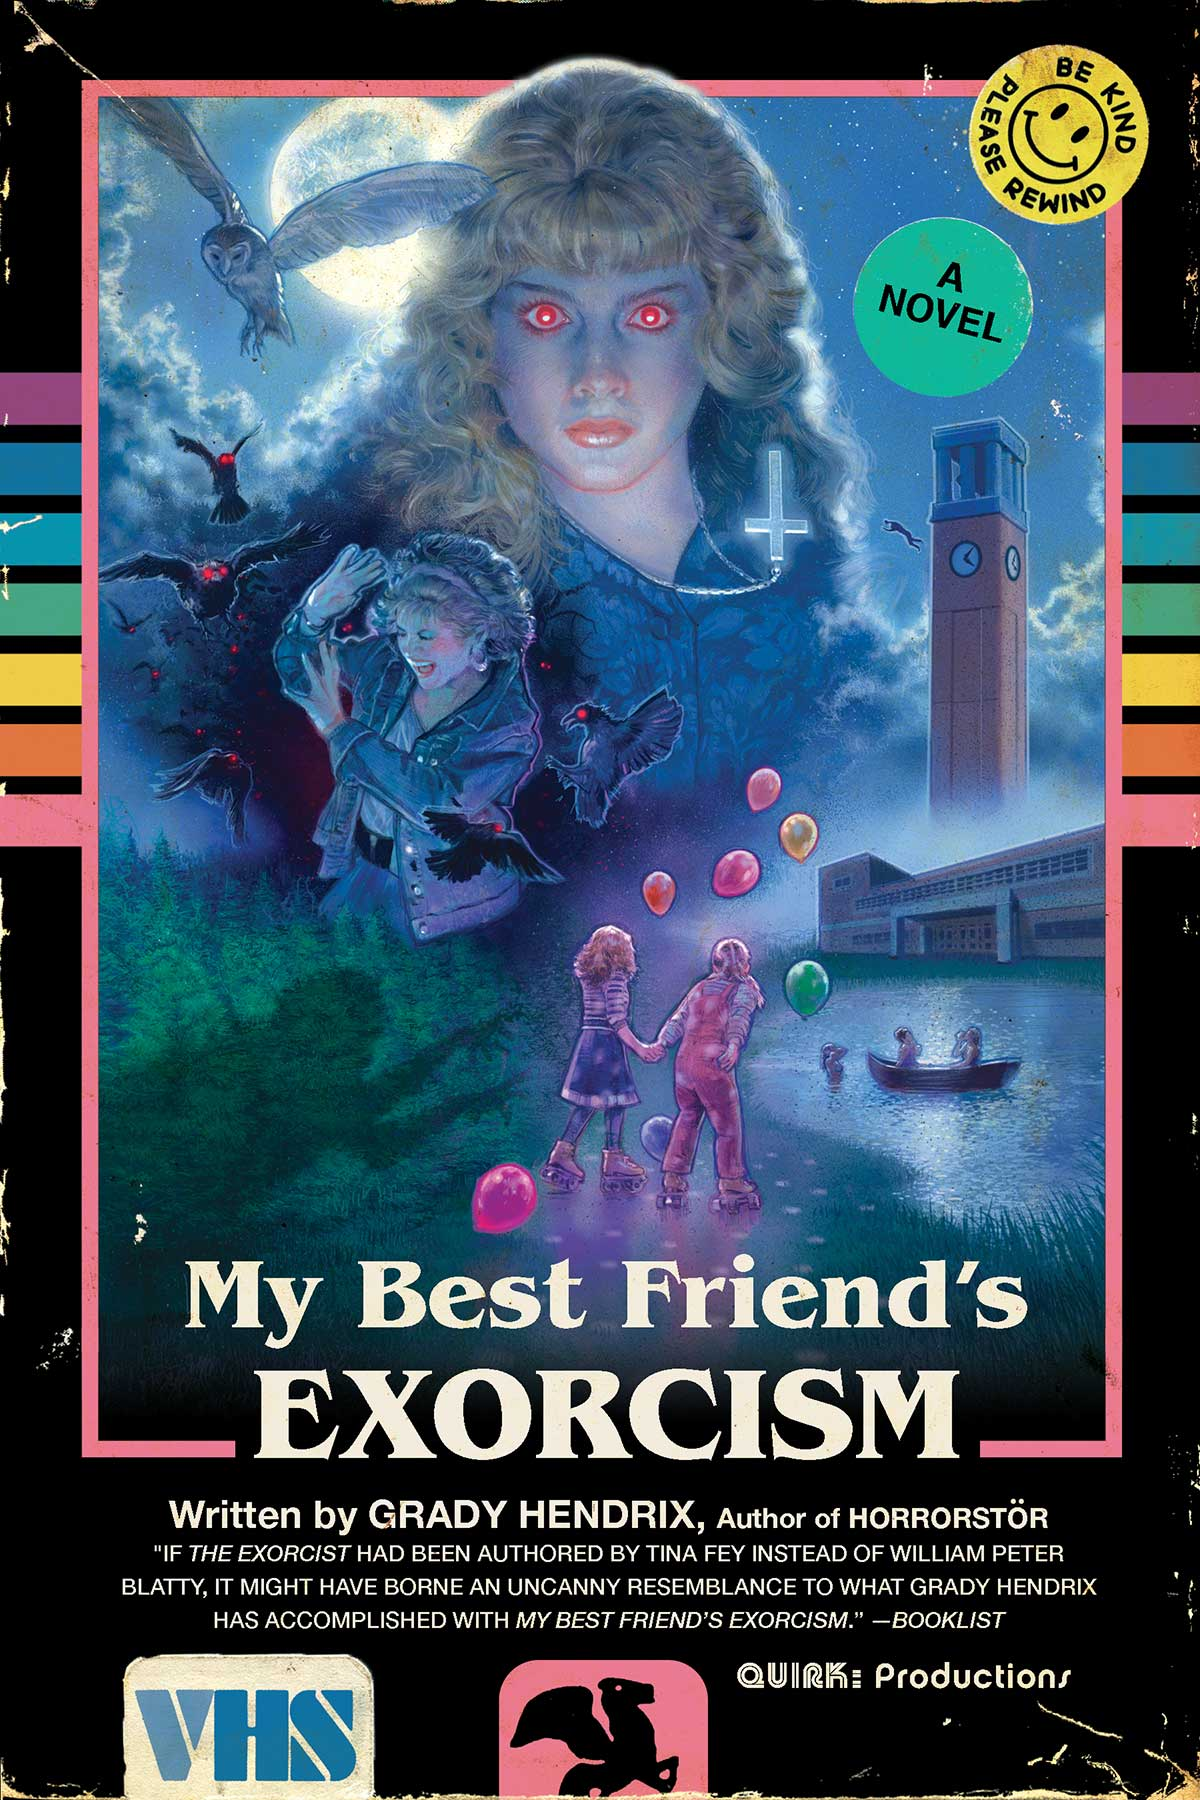 Cover reveal for my best friends exorcism looks like 1980s vhs cover reveal for my best friends exorcism looks like 1980s vhs rental solutioingenieria Images